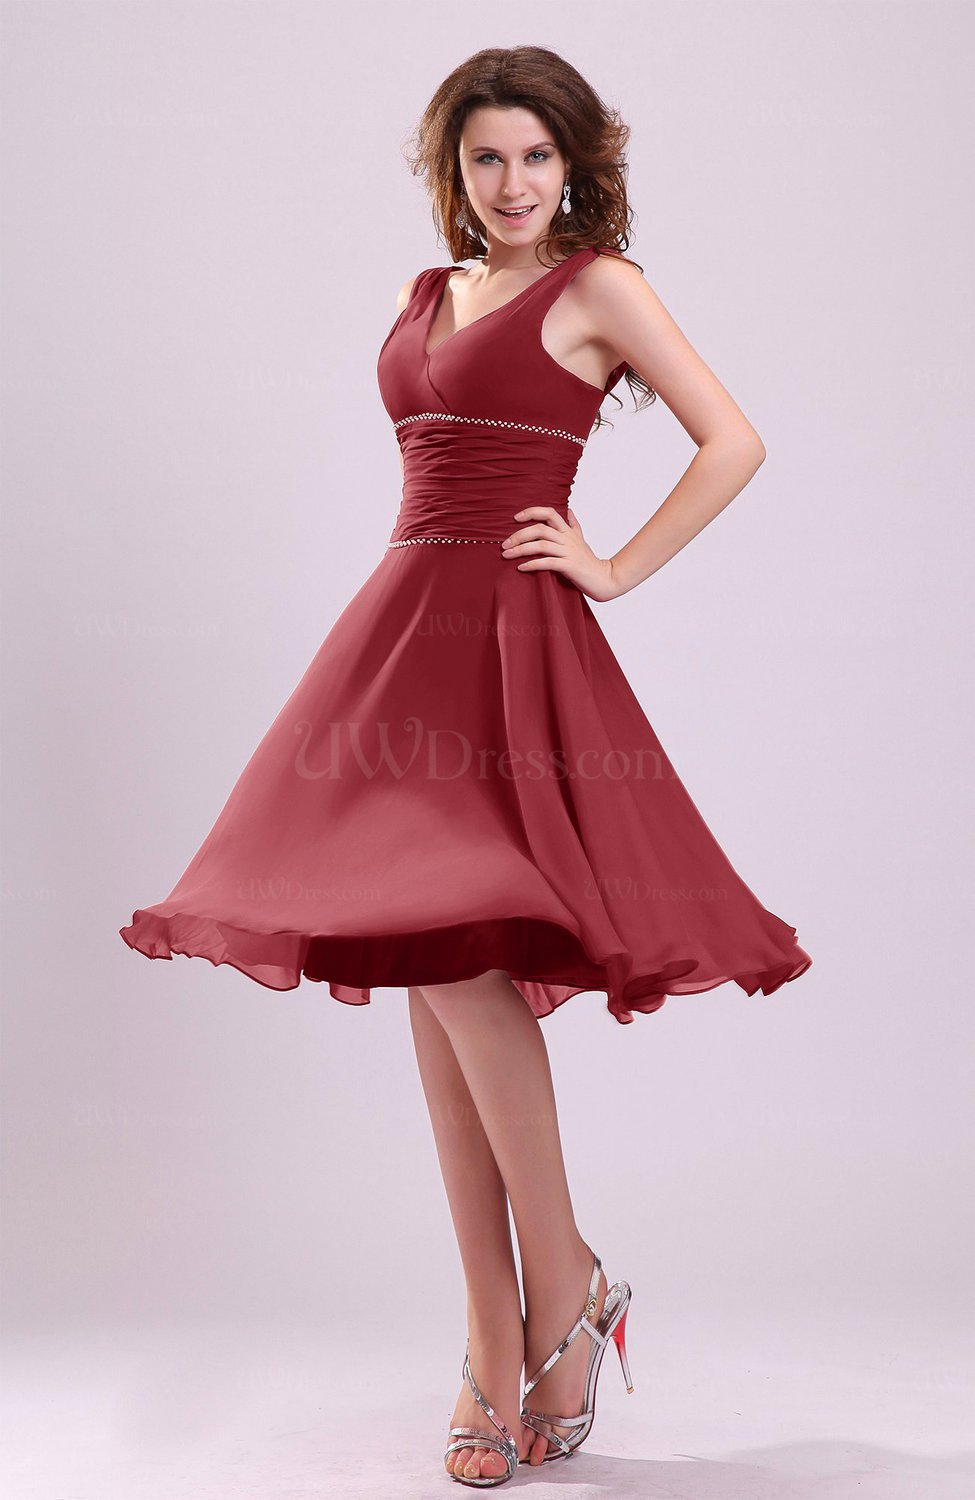 Plus size bridesmaid dresses uwdress dark red cute a line sleeveless chiffon knee length ruching bridesmaid dresses ombrellifo Images